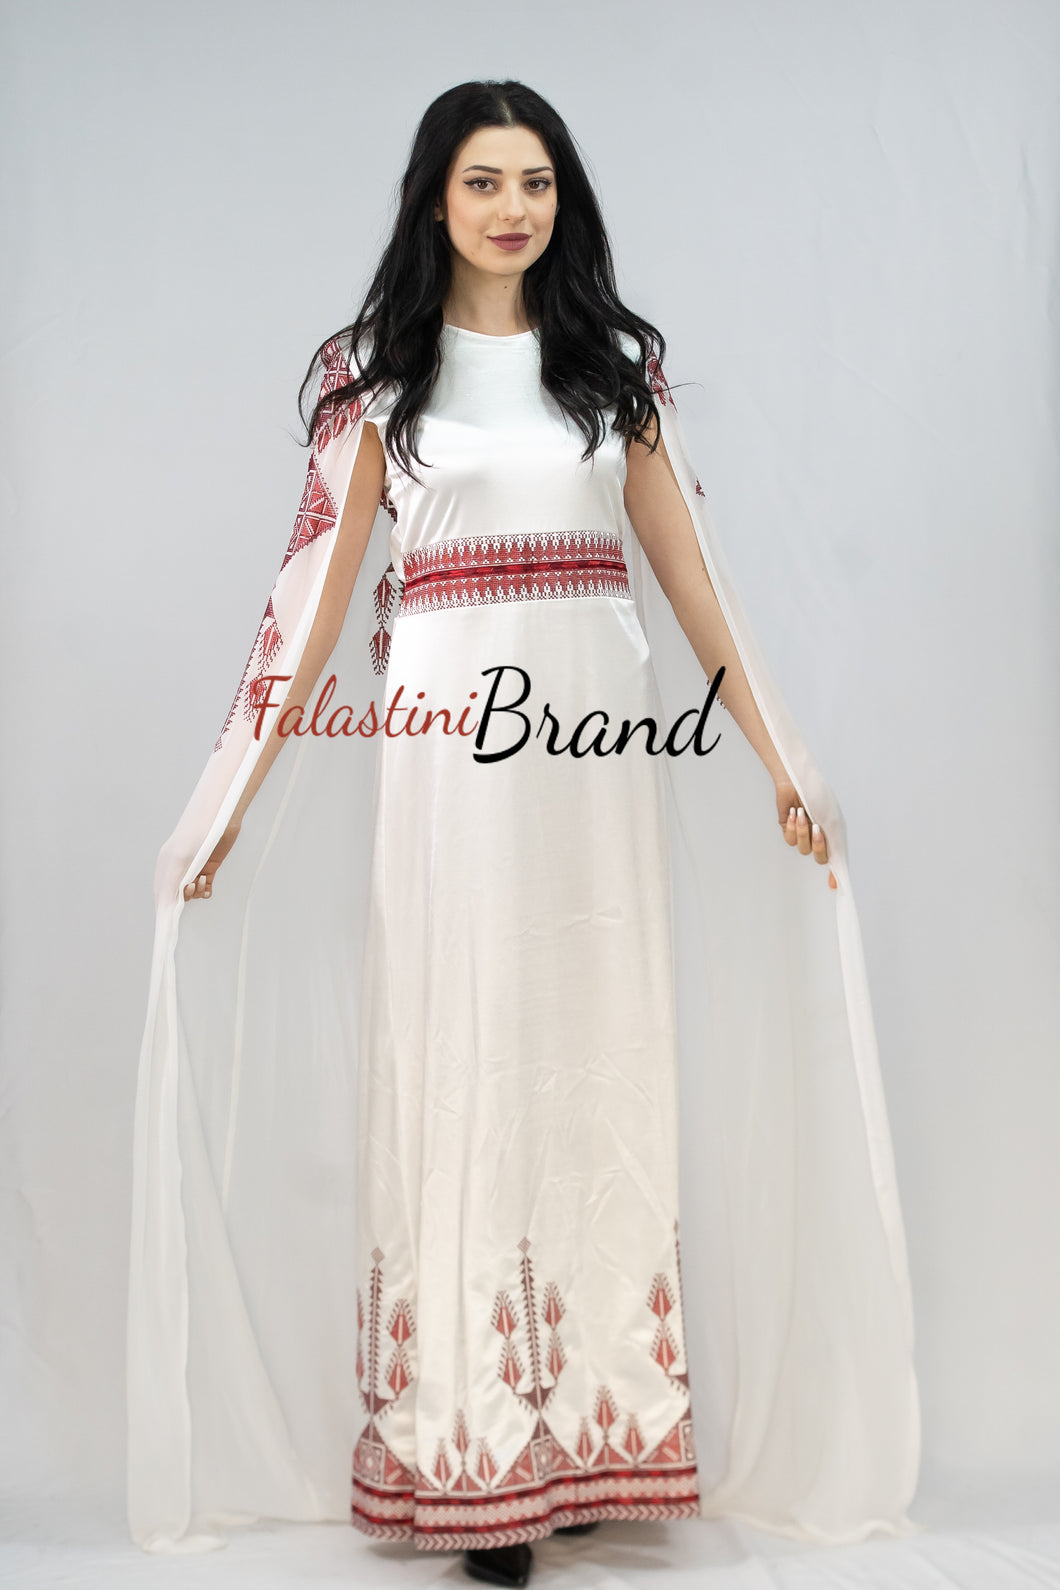 Stunning White And Red Smooth Satin Palestinian Embroidered Dress